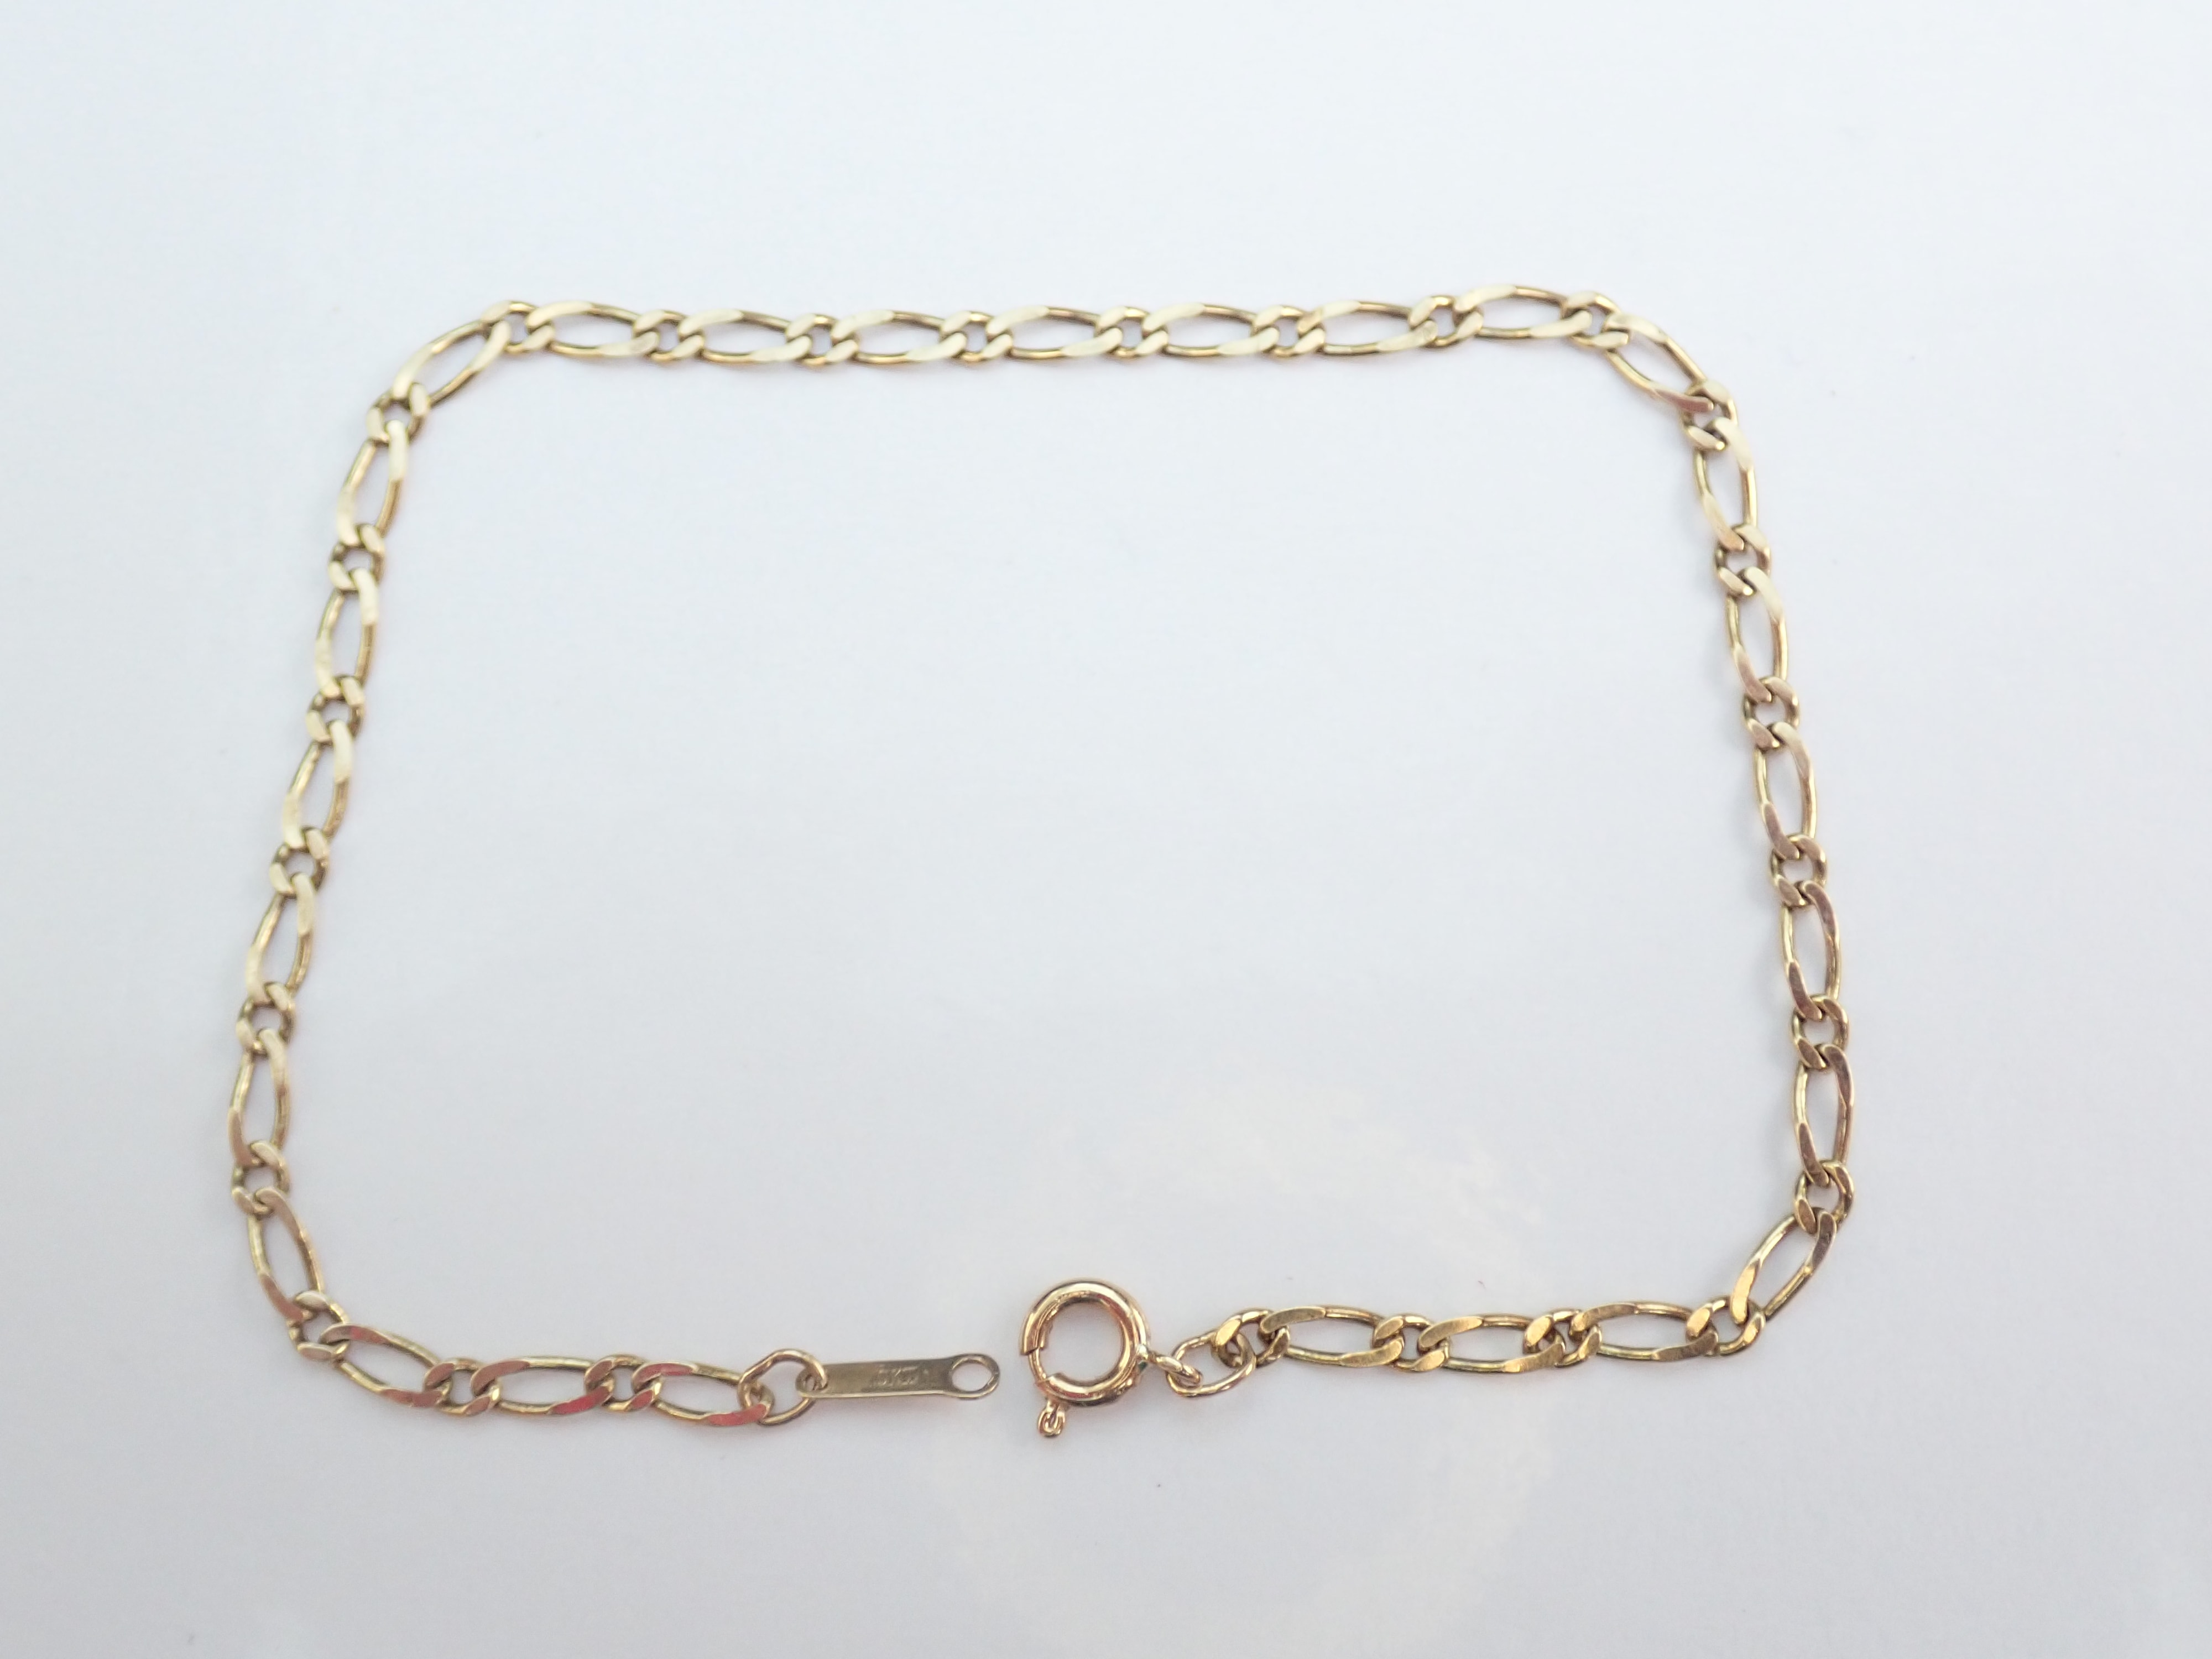 Solid 9ct Yellow Gold Double Link Bracelet 7.5 Inch 19cm  22.2 Grams #420